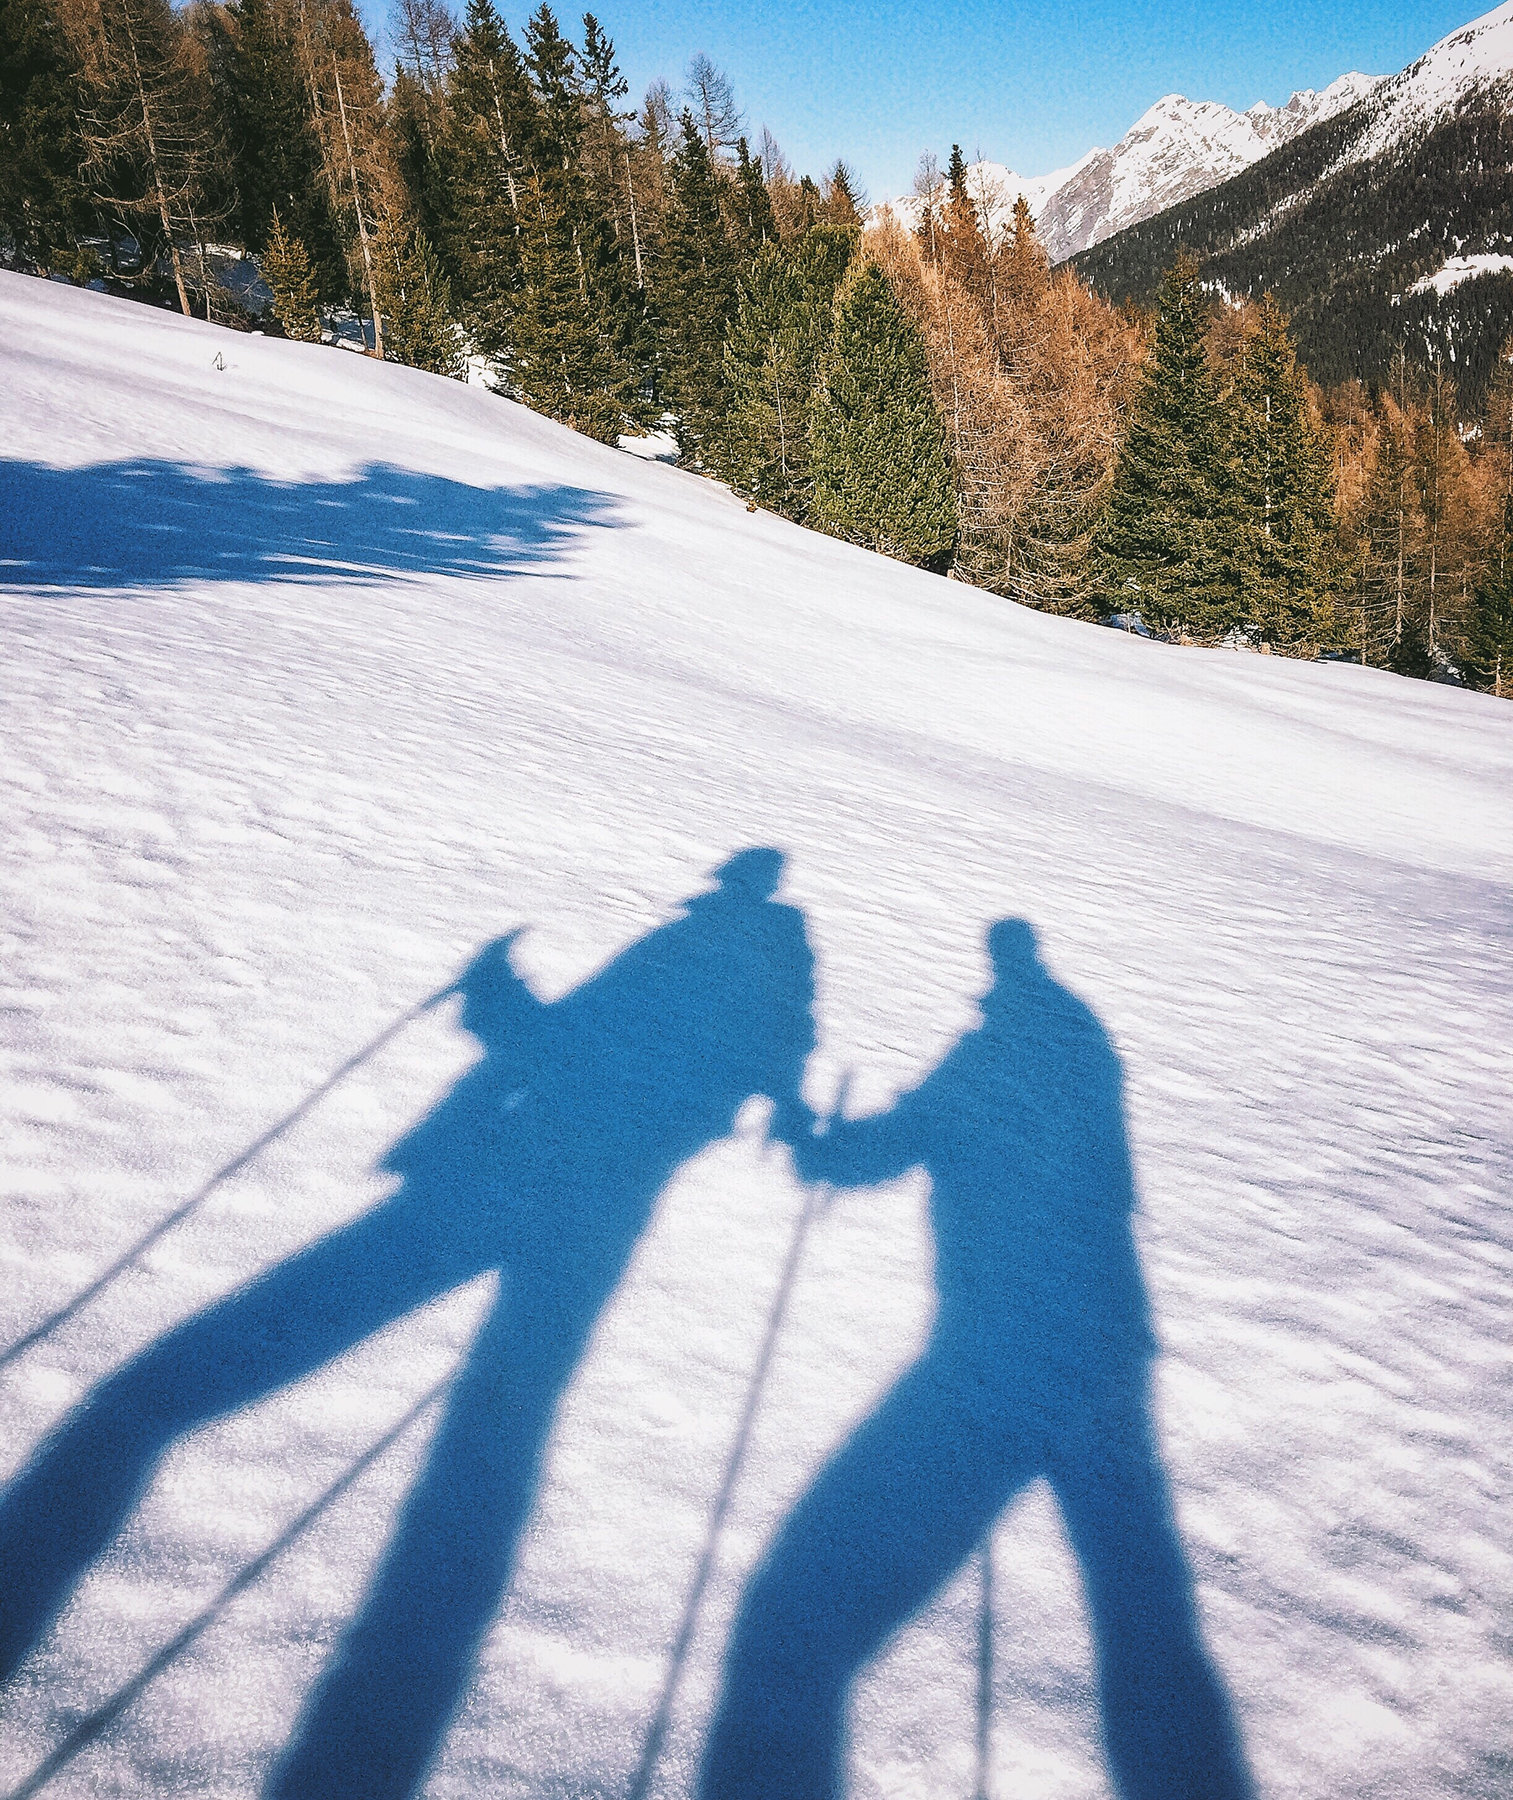 skier-shadows-snow